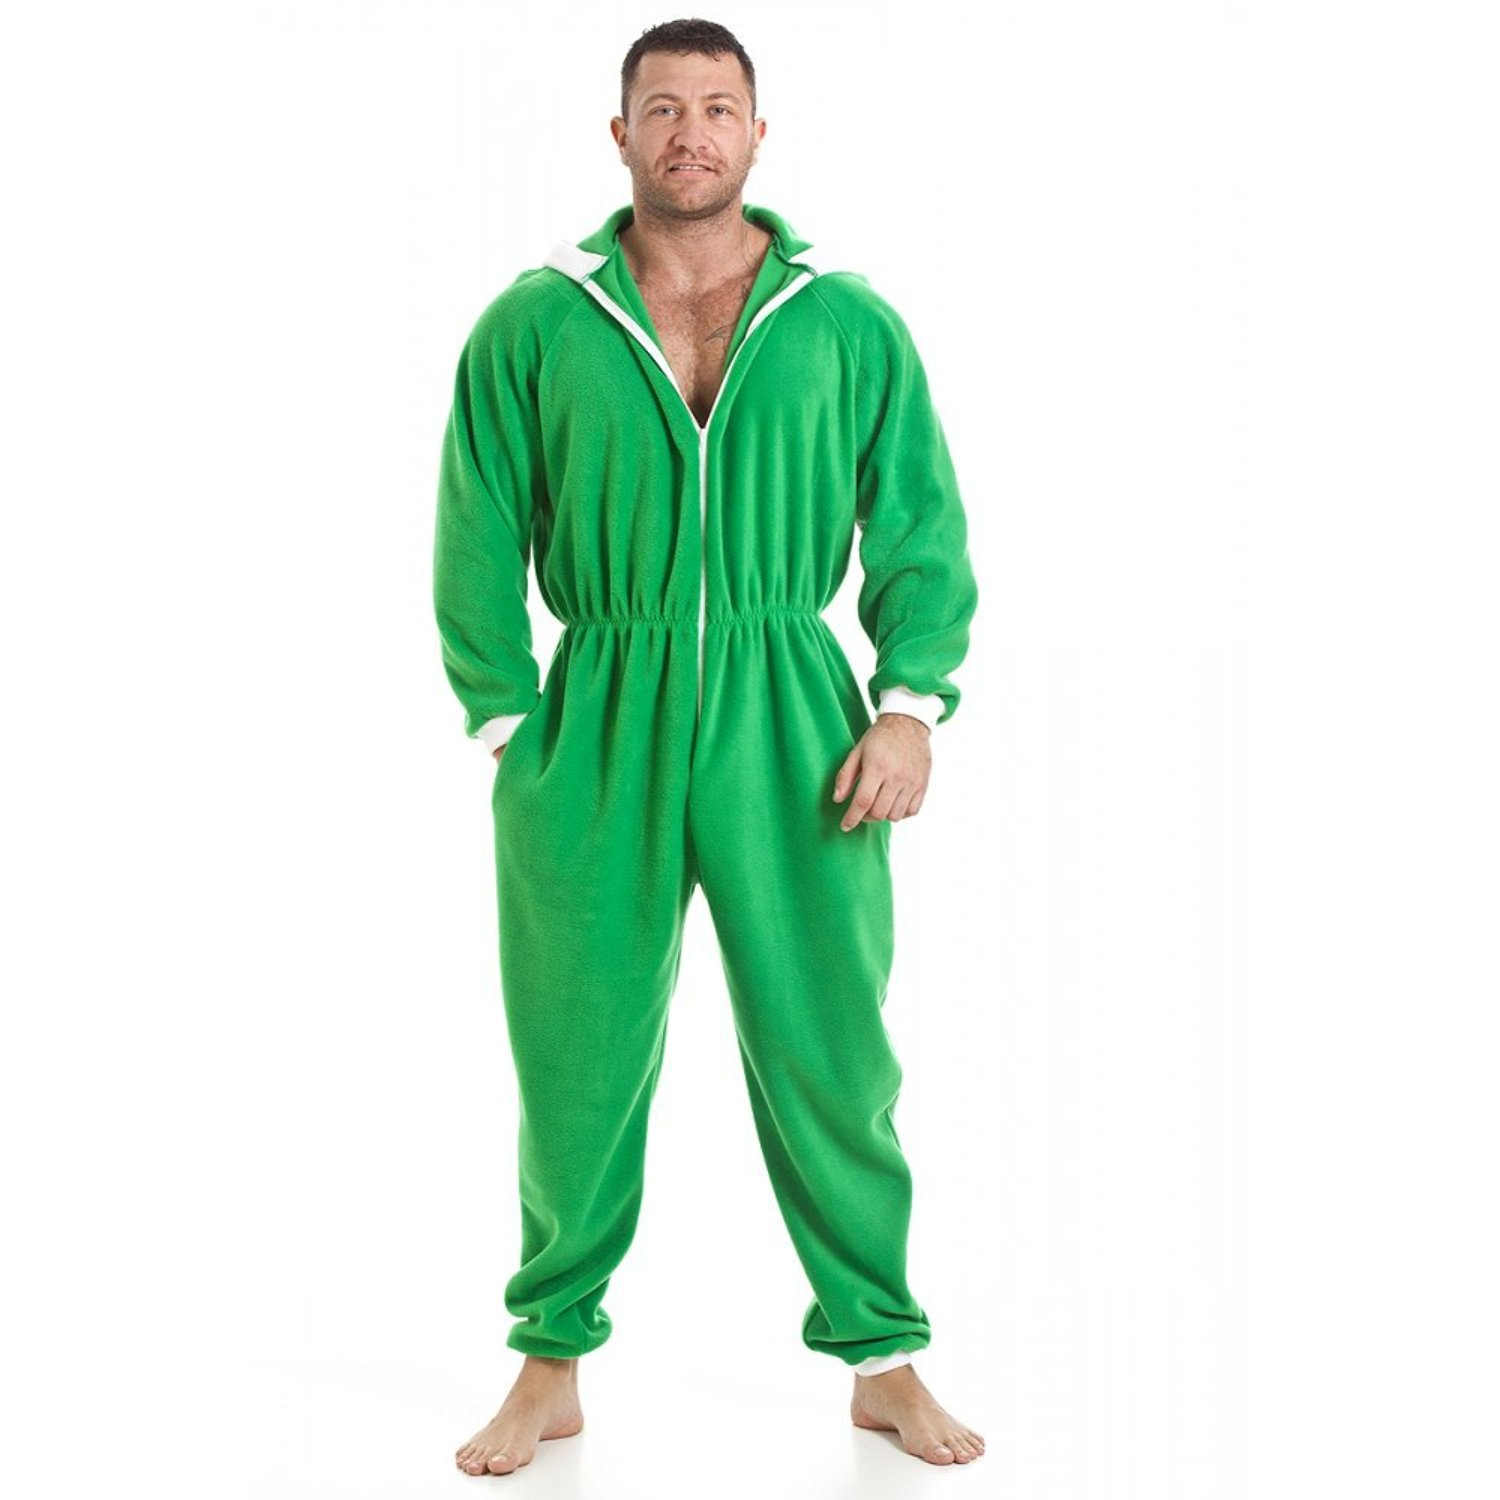 Camille Nightwear Mens Adult Green Army Camouflage All In One Pyjama Jumpsuit